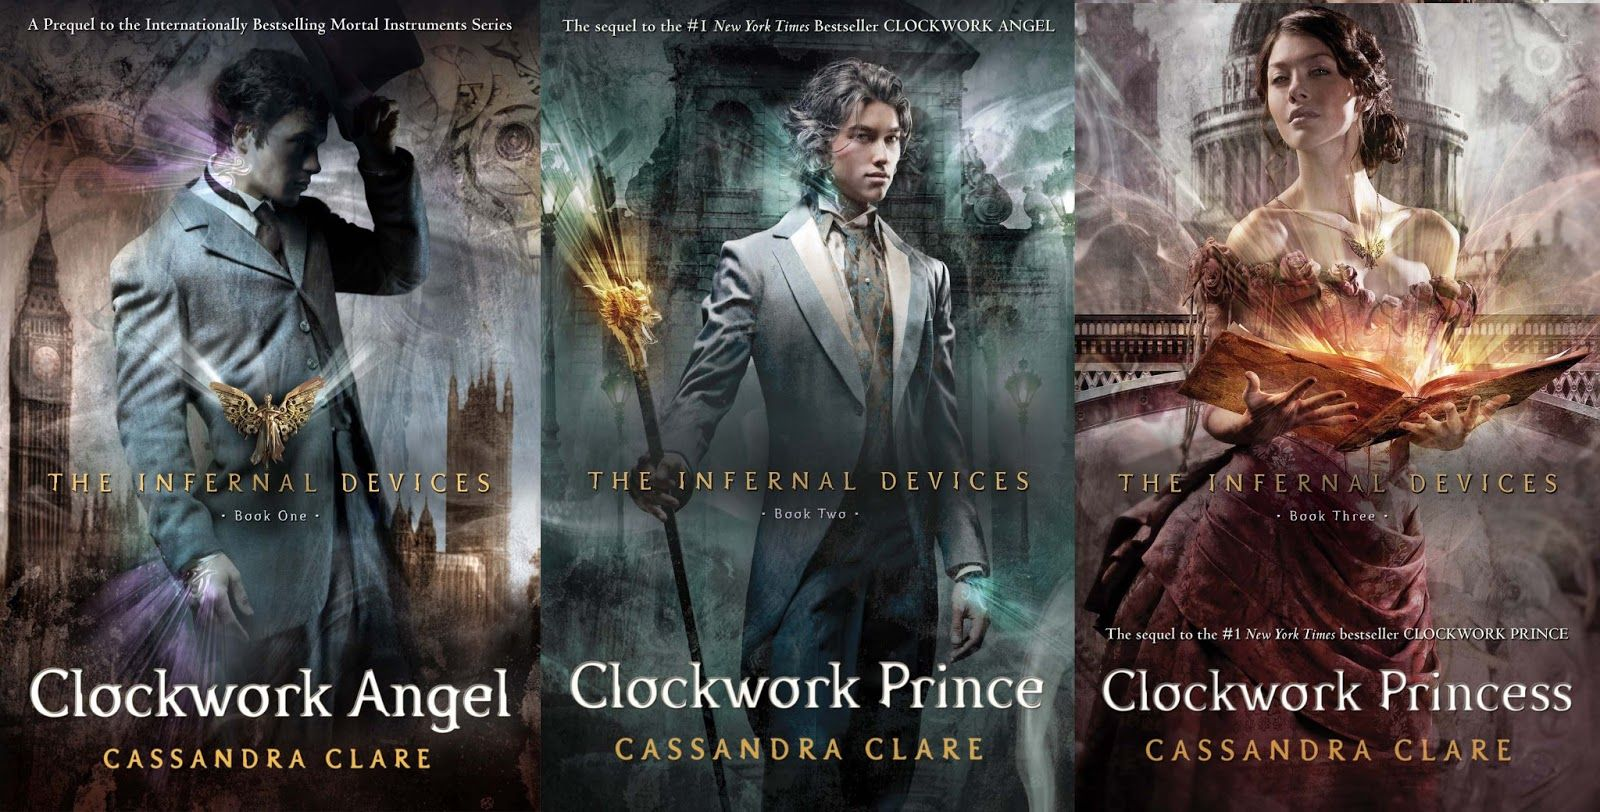 the infernal devices trilogy